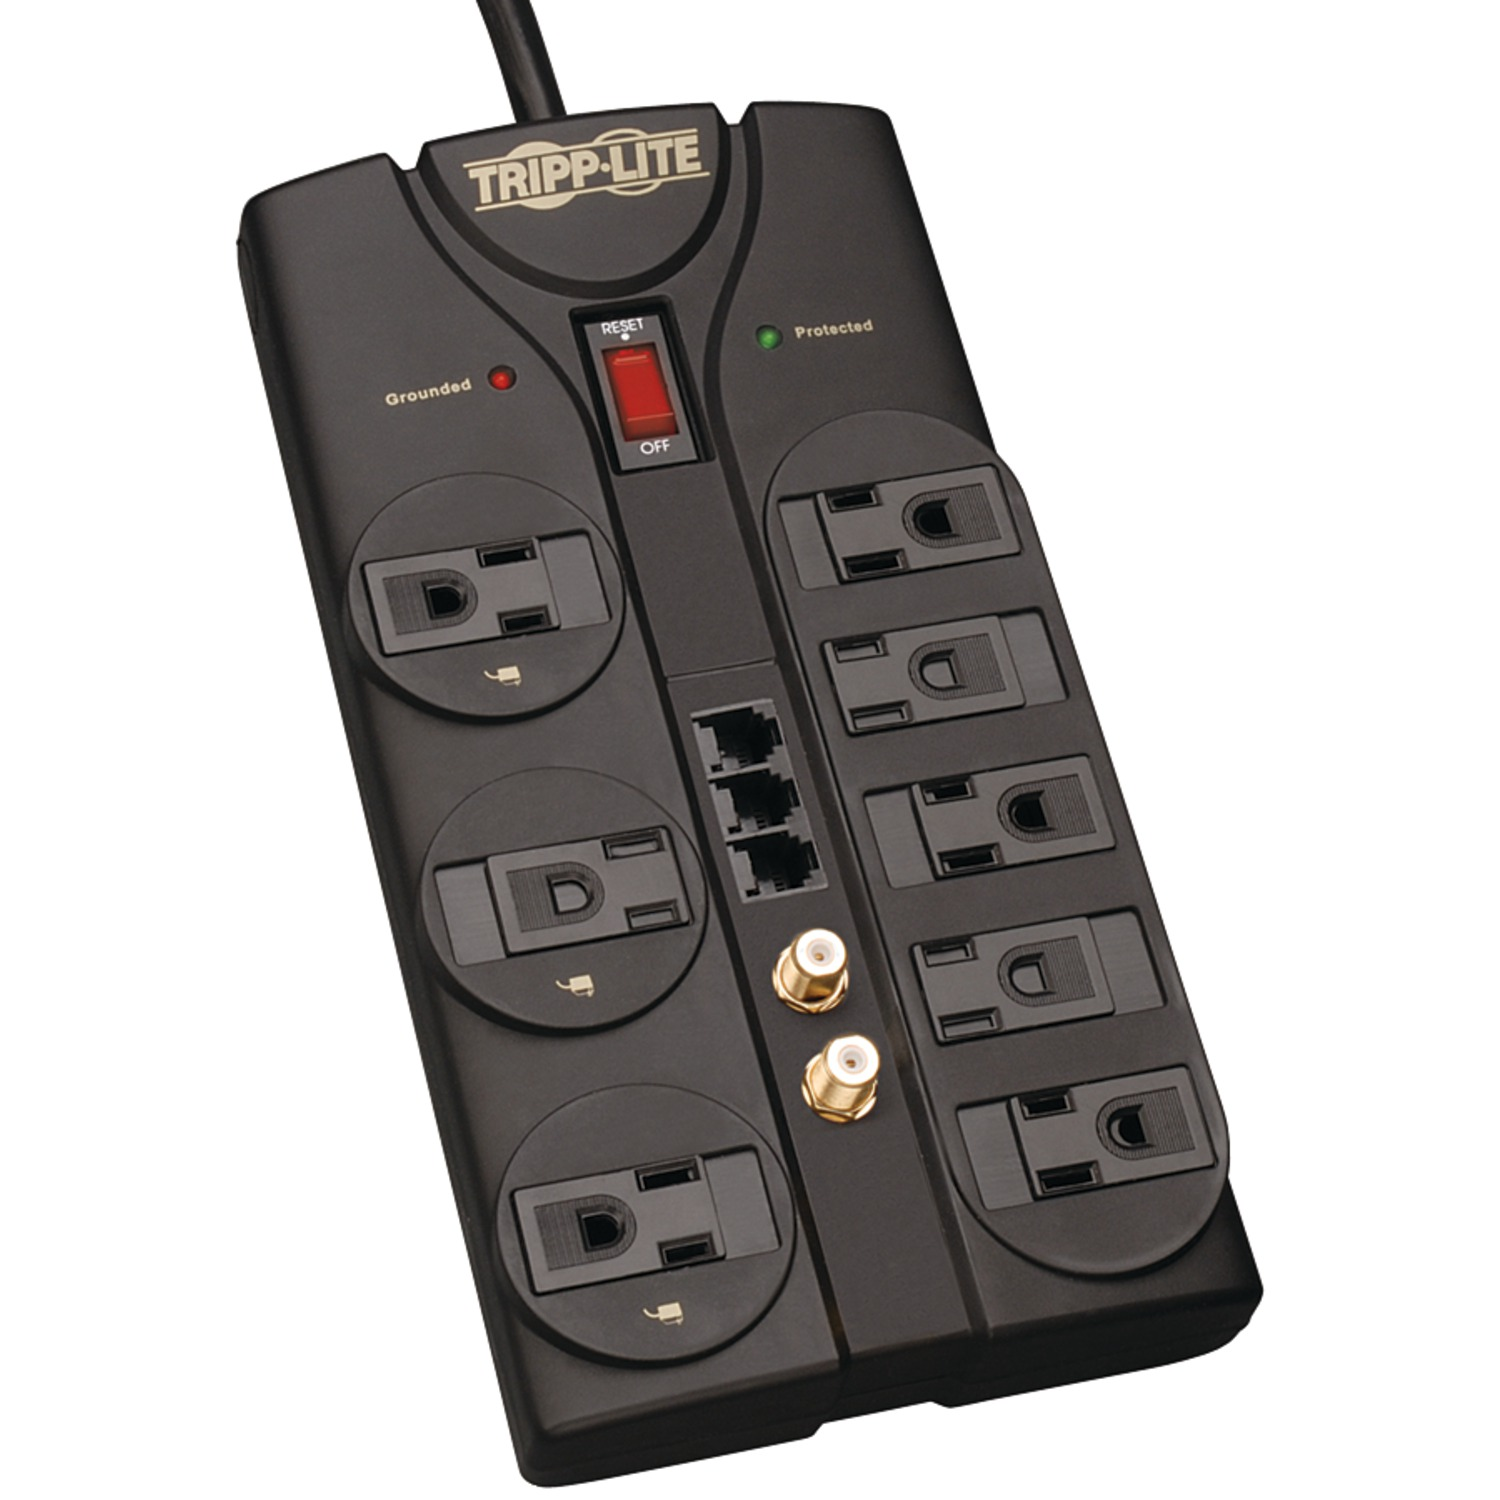 Tripp Lite Tlp808teltv 8-outlet Surge Protector (2,160 Joules; 8ft Cord; Tel/modem/fax Protection; $150,000 Ultimate Lifetime Insurance)